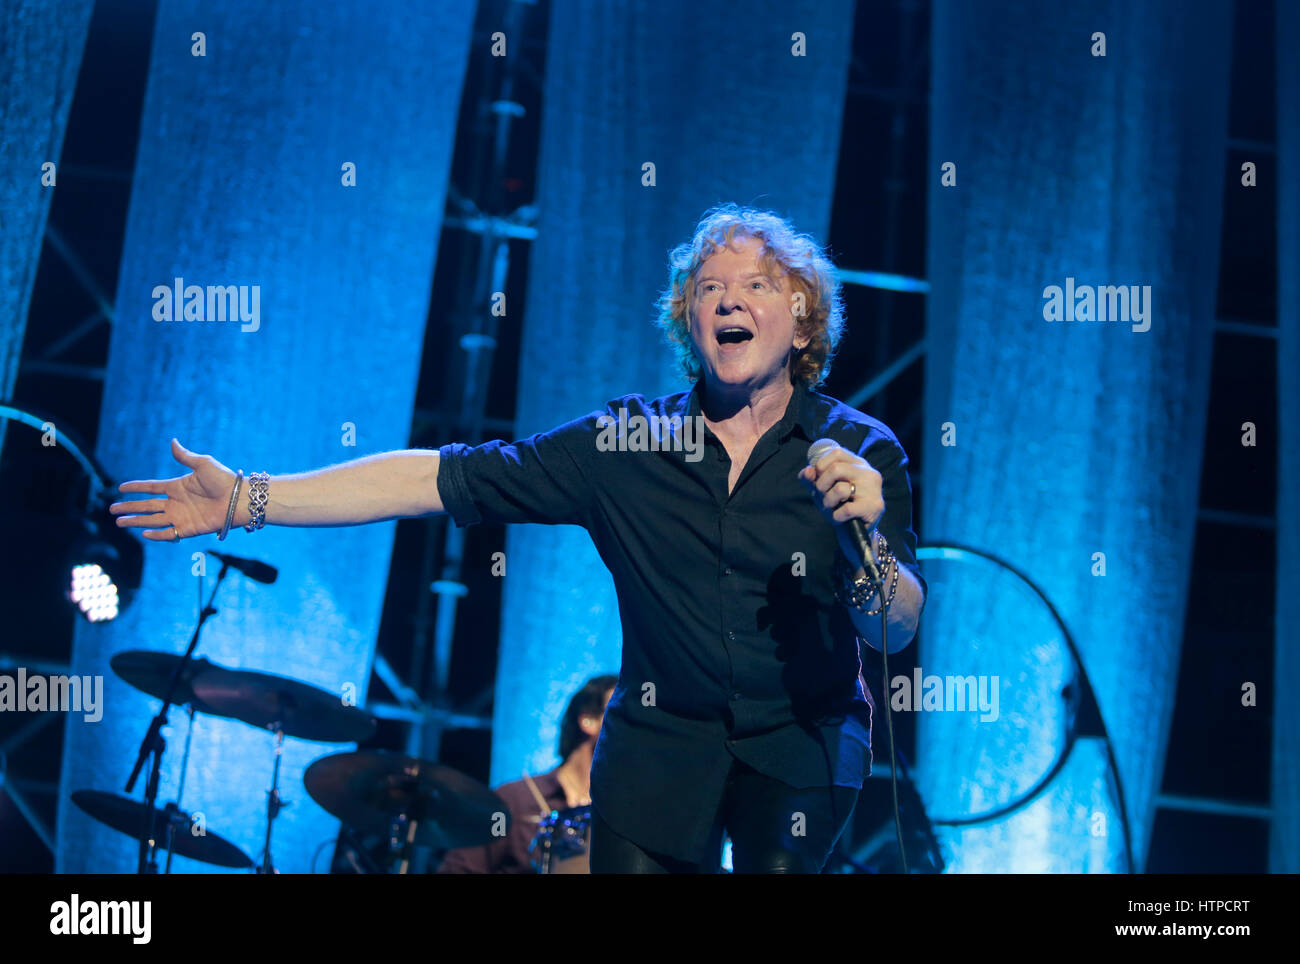 Simply red live in Majorca, Spain - Stock Image